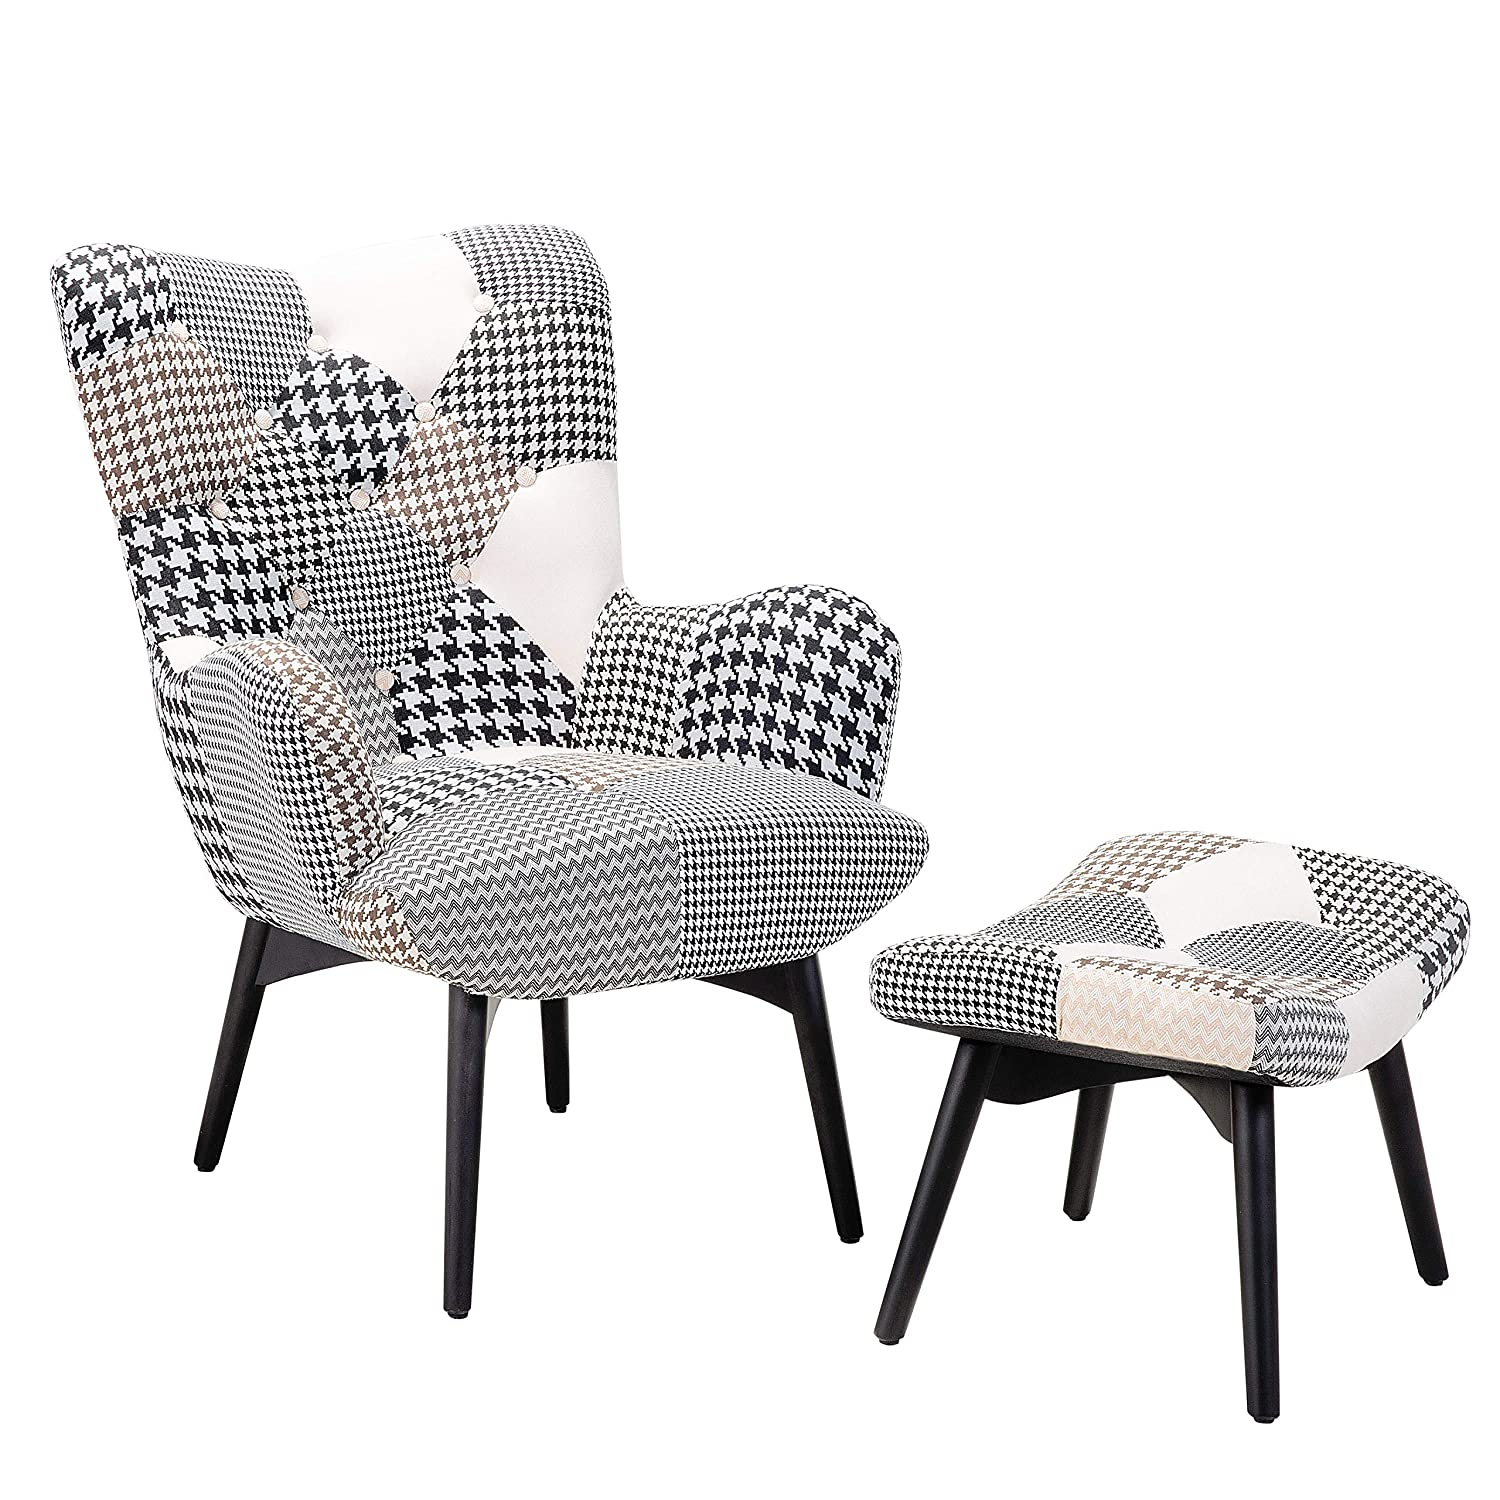 Beliani Armchair White and Black - Settee - Seat - Upholstered Armchair with Ottoman - VEJLE